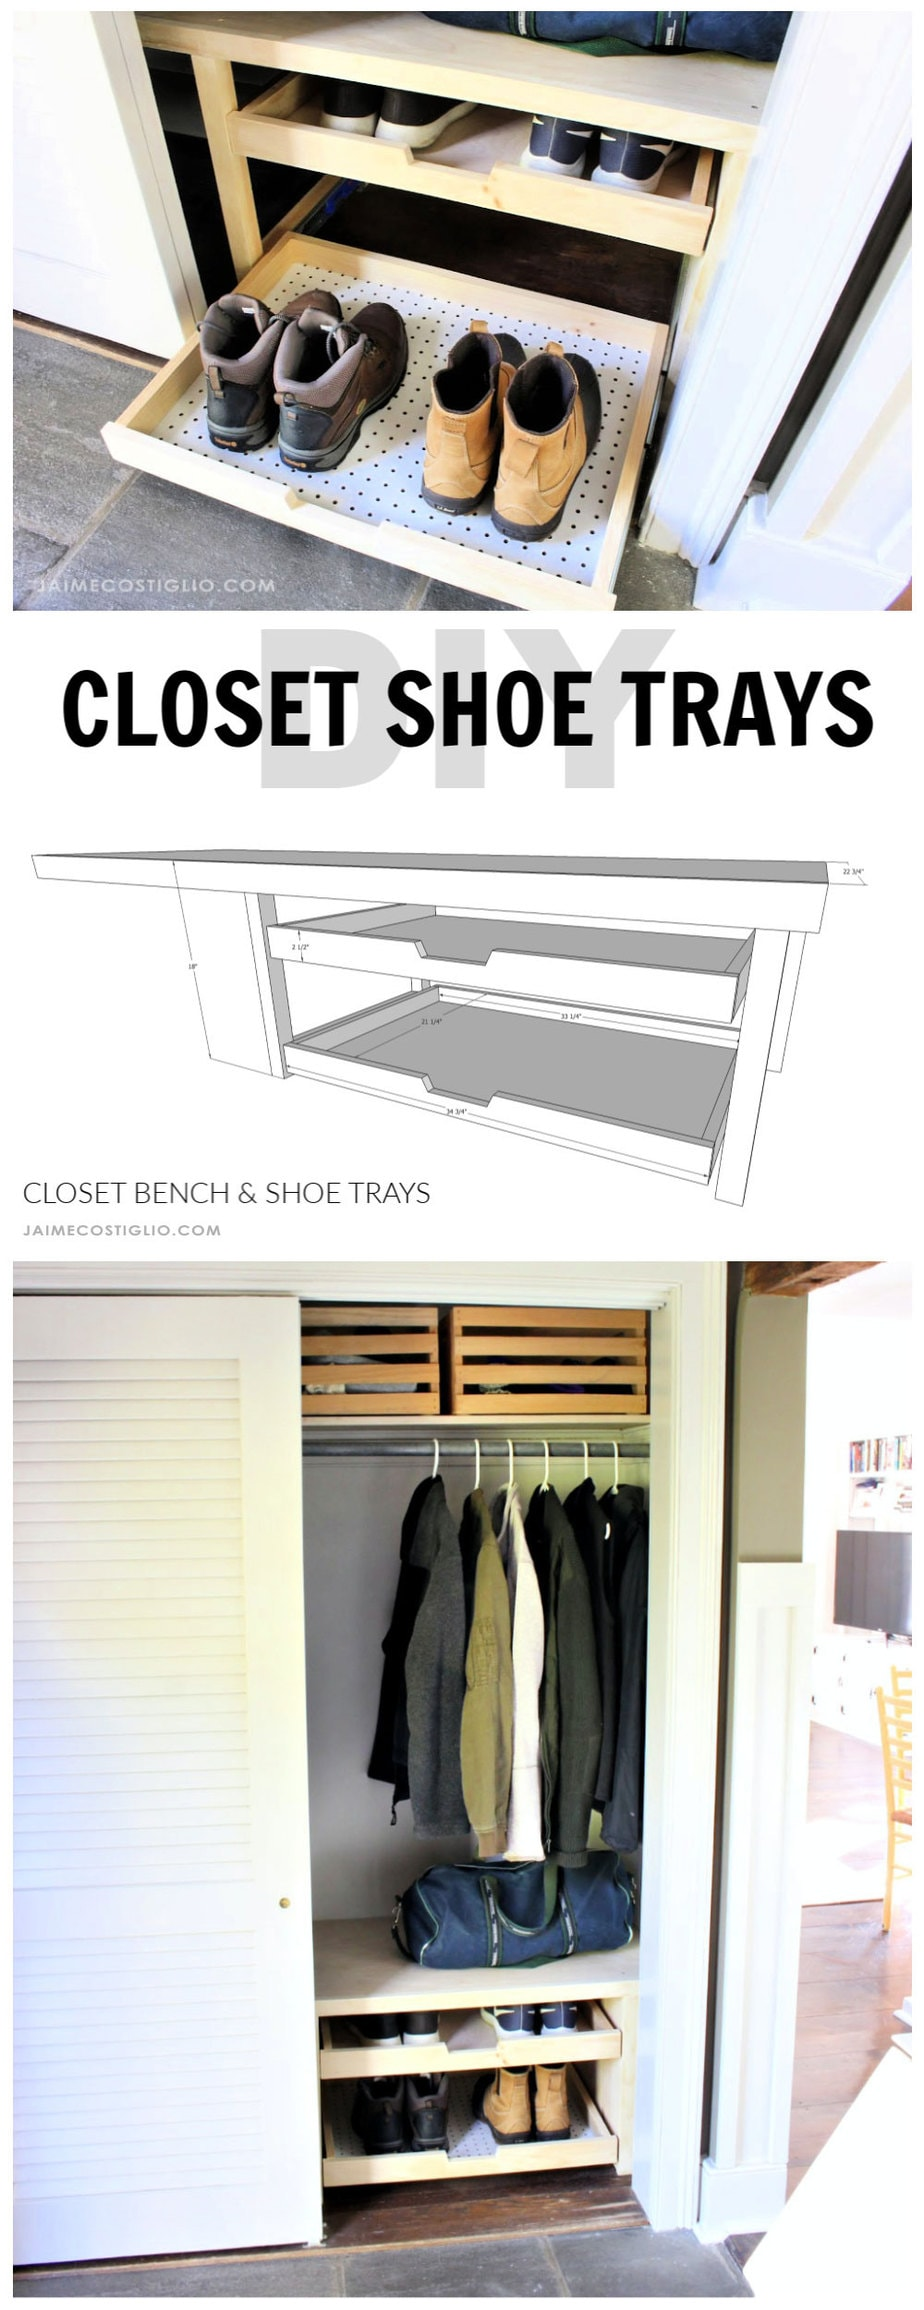 diy closet shoe trays free plans